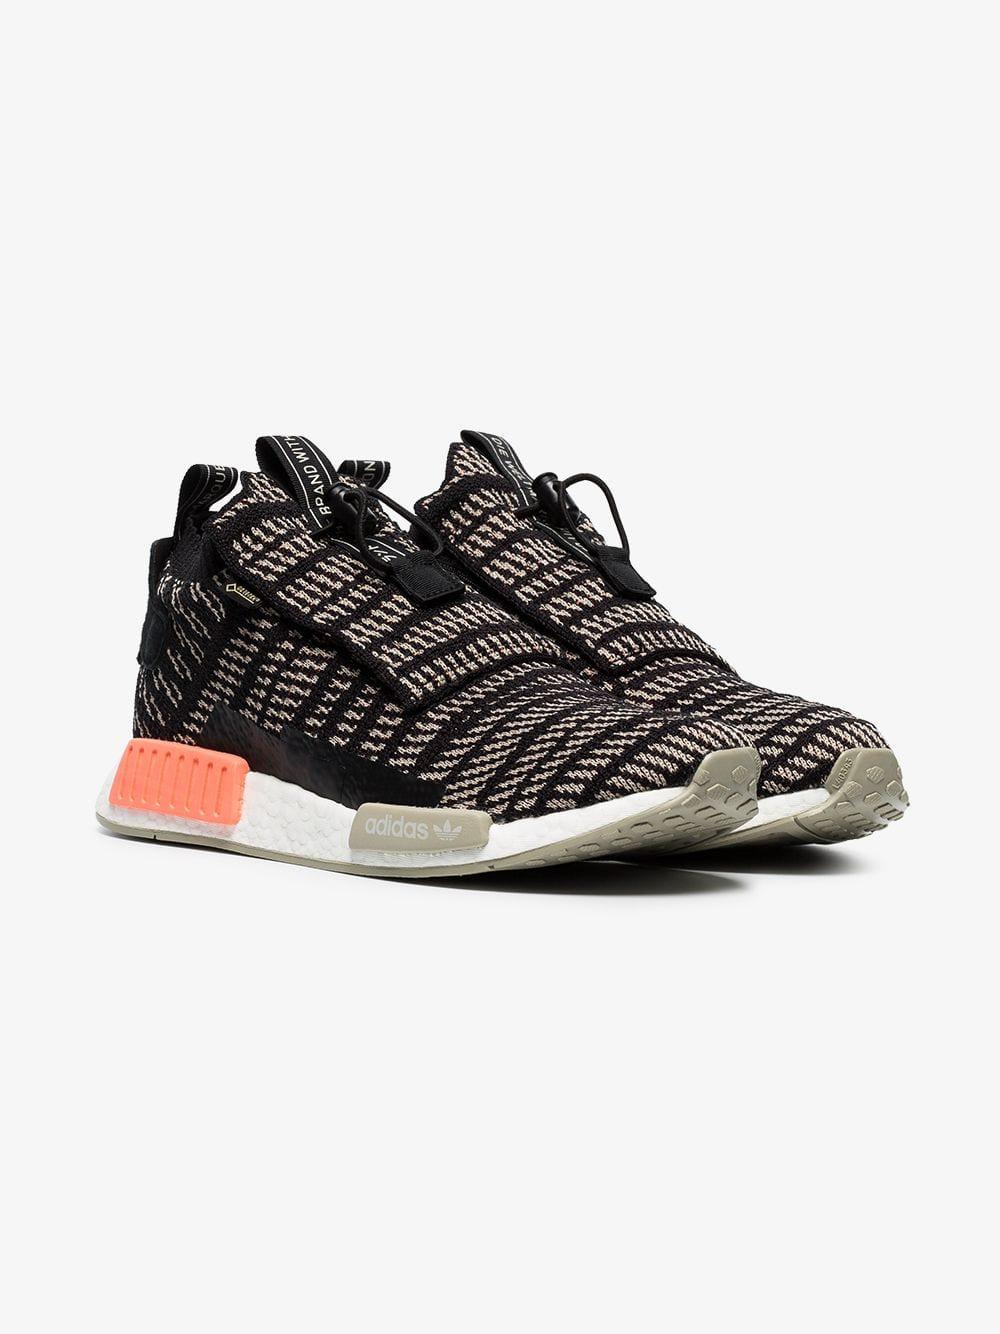 dcdfa09769d4e Lyst - adidas Black And Beige Nmd Ts1 Primeknit Gtx Sneakers in ...